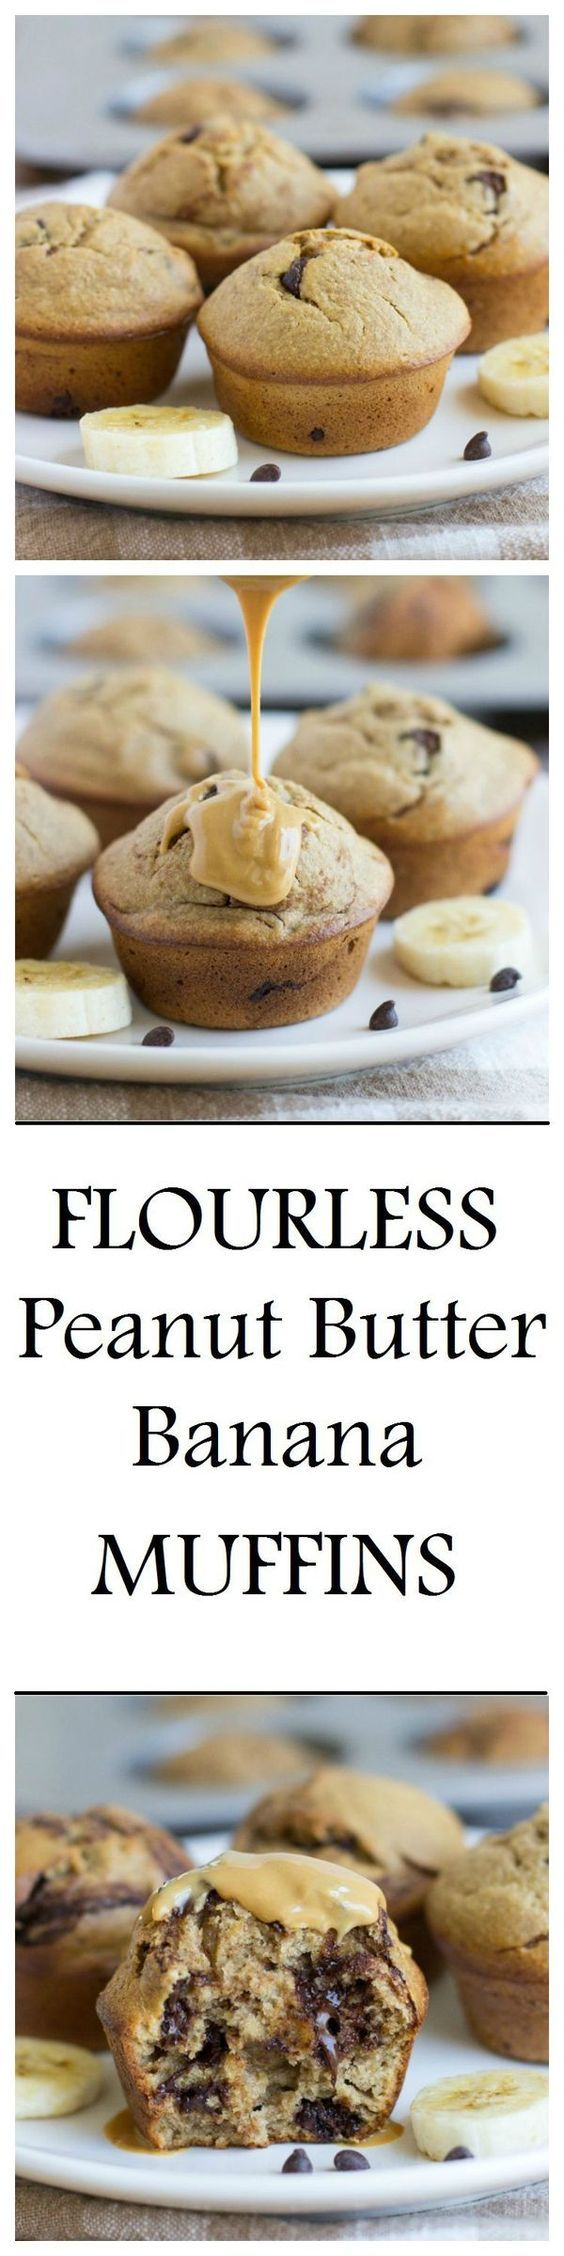 Flourless peanut butter banana muffins that are dairy-free gluten-free and refined sugar-free. One muffin has as much protein as an egg they're so moist and delicious you would never guess that they're healthy!